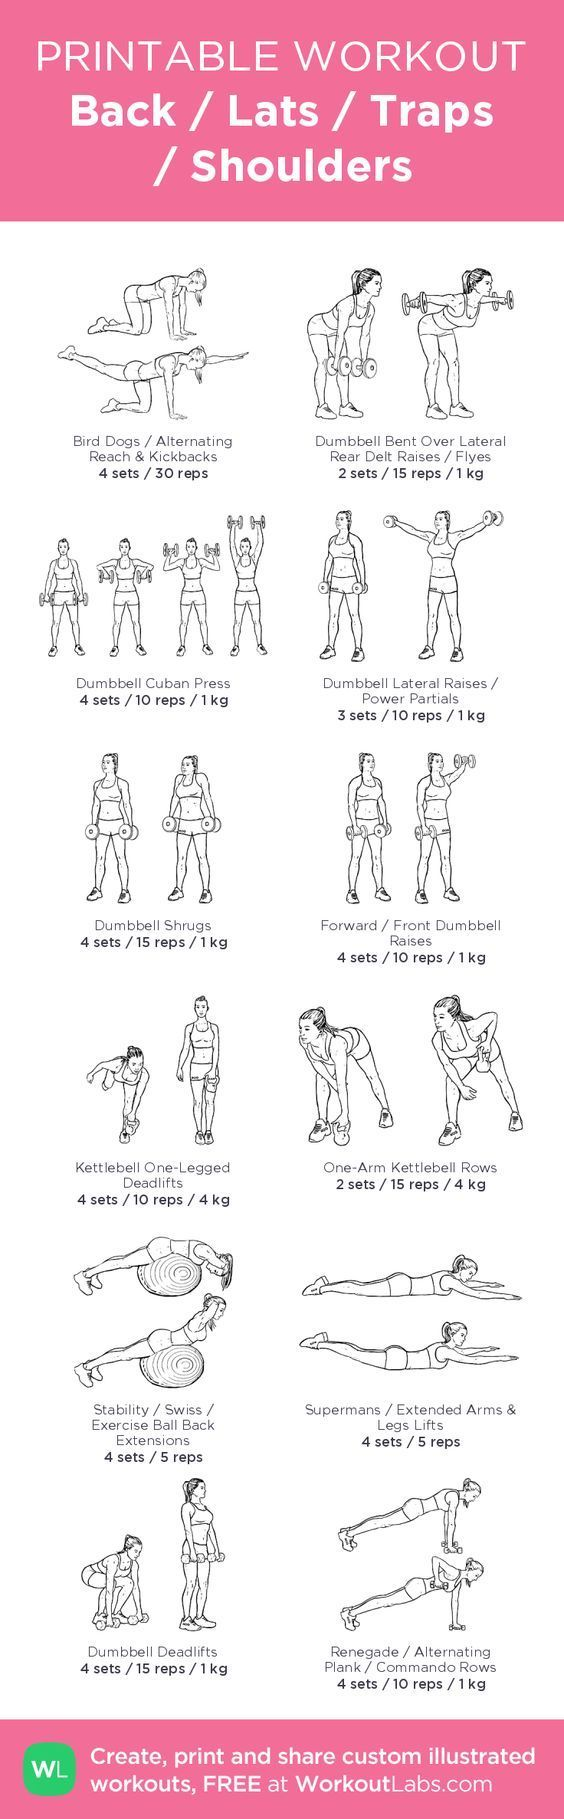 Back / Lats / Traps / Shoulders– my custom exercise plan created at http://WorkoutLabs.com • Click through to download as a printable workout PDF #customworkout